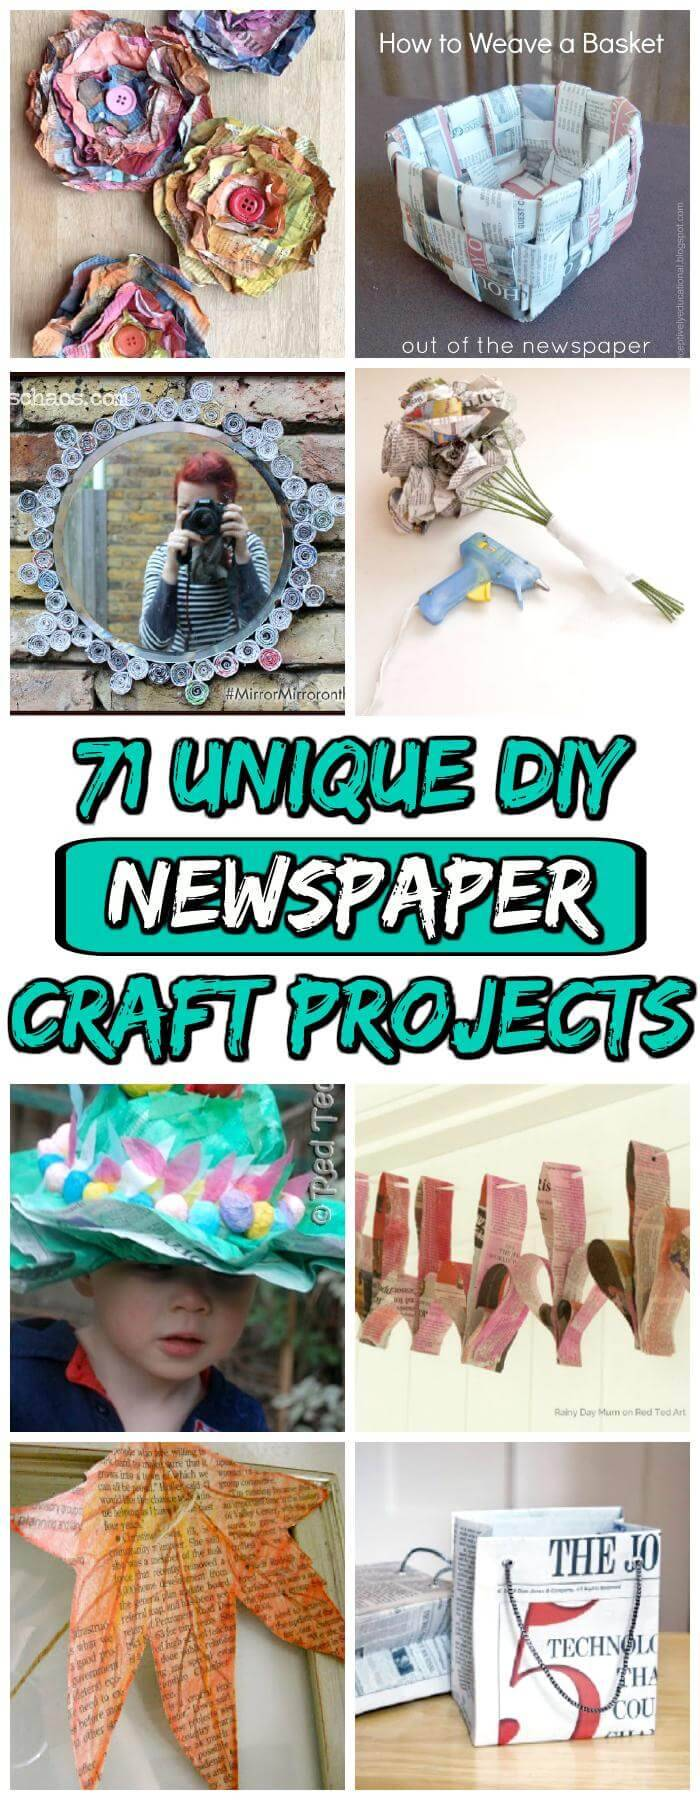 DIY Newspaper Craft Projects